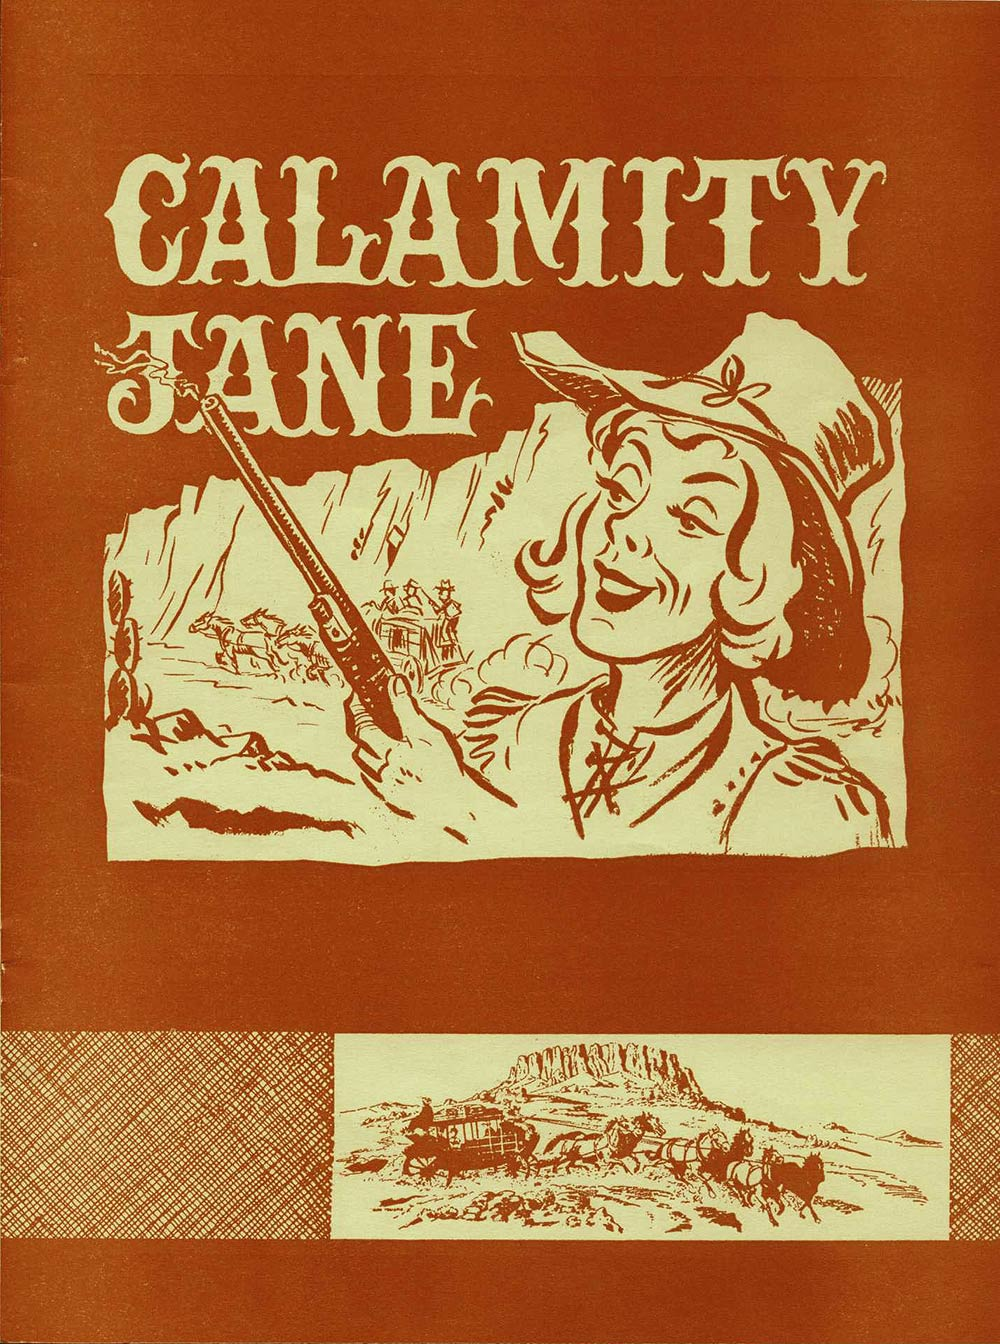 <em>Calamity Jane</em>. Lyrics by Paul Francis Webster; music by Sammy Fain. (Dunedin Operatic & Dramatic Society). His Majesty's Theatre, Dunedin, Aug. 26-Sept. 2, 1967.